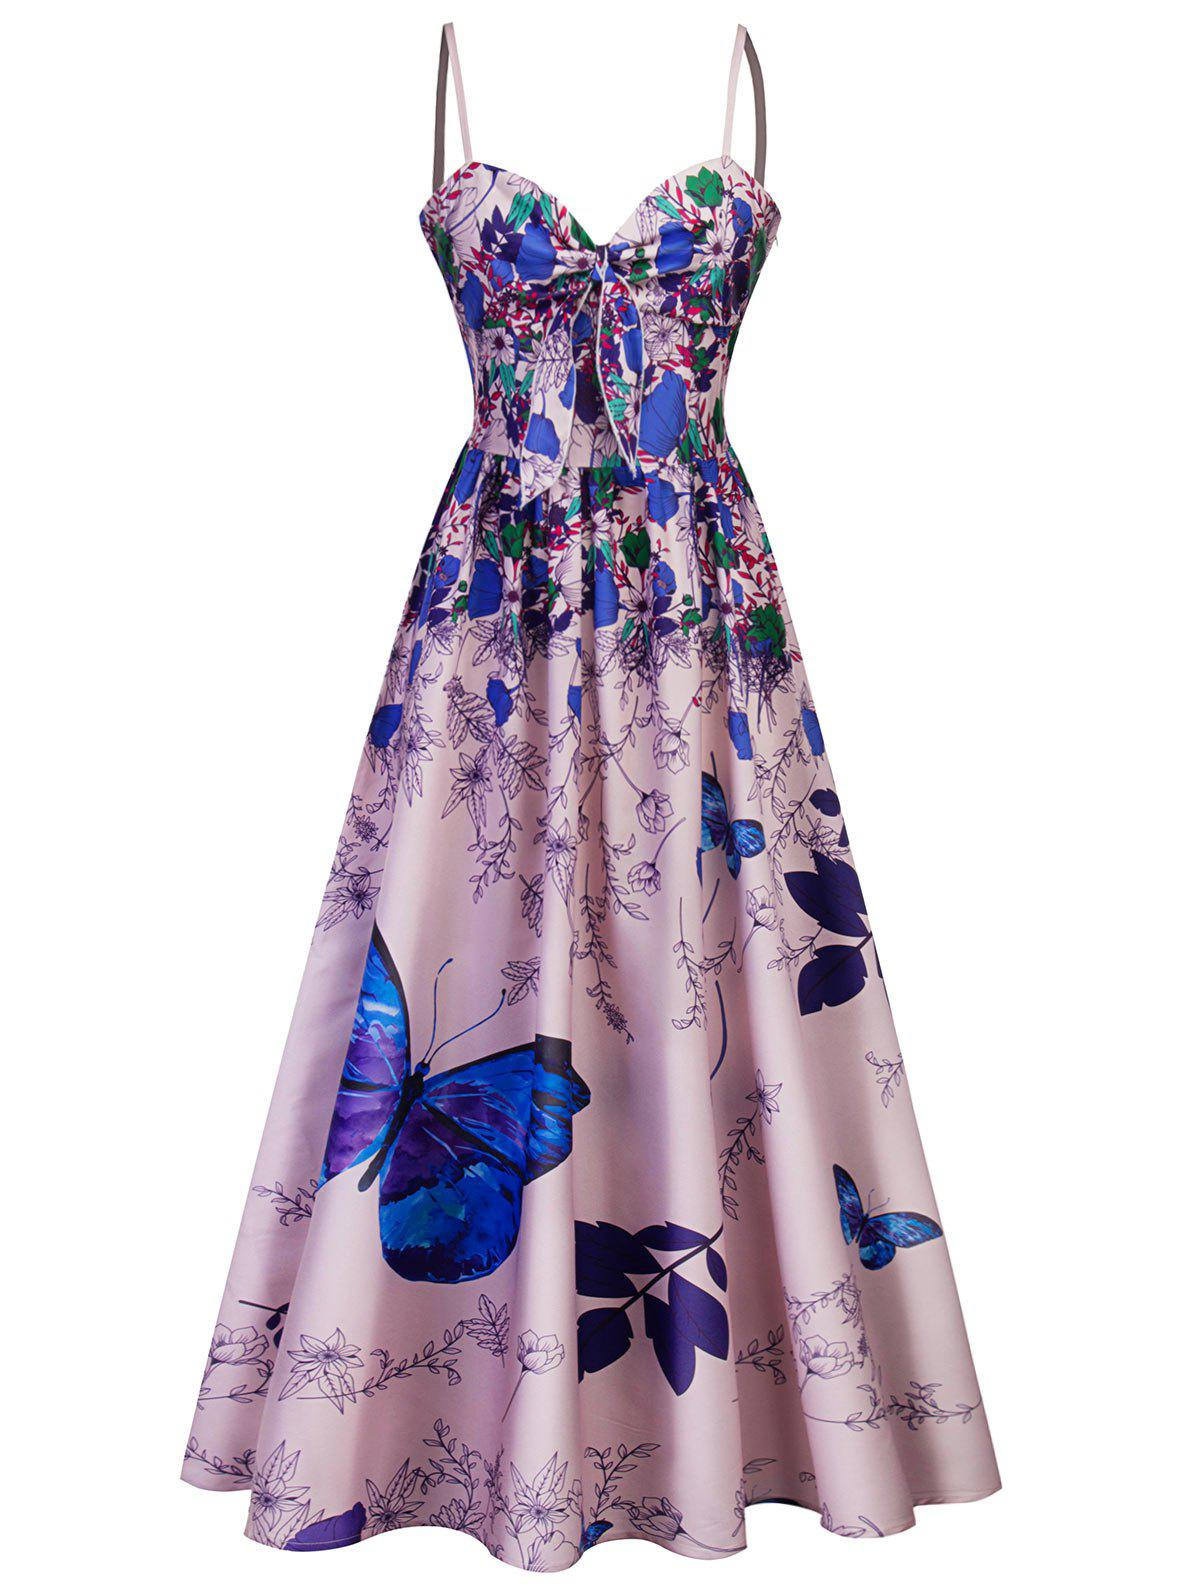 Spaghetti Strap Printed Long Party Dress - BLUE ORCHID M